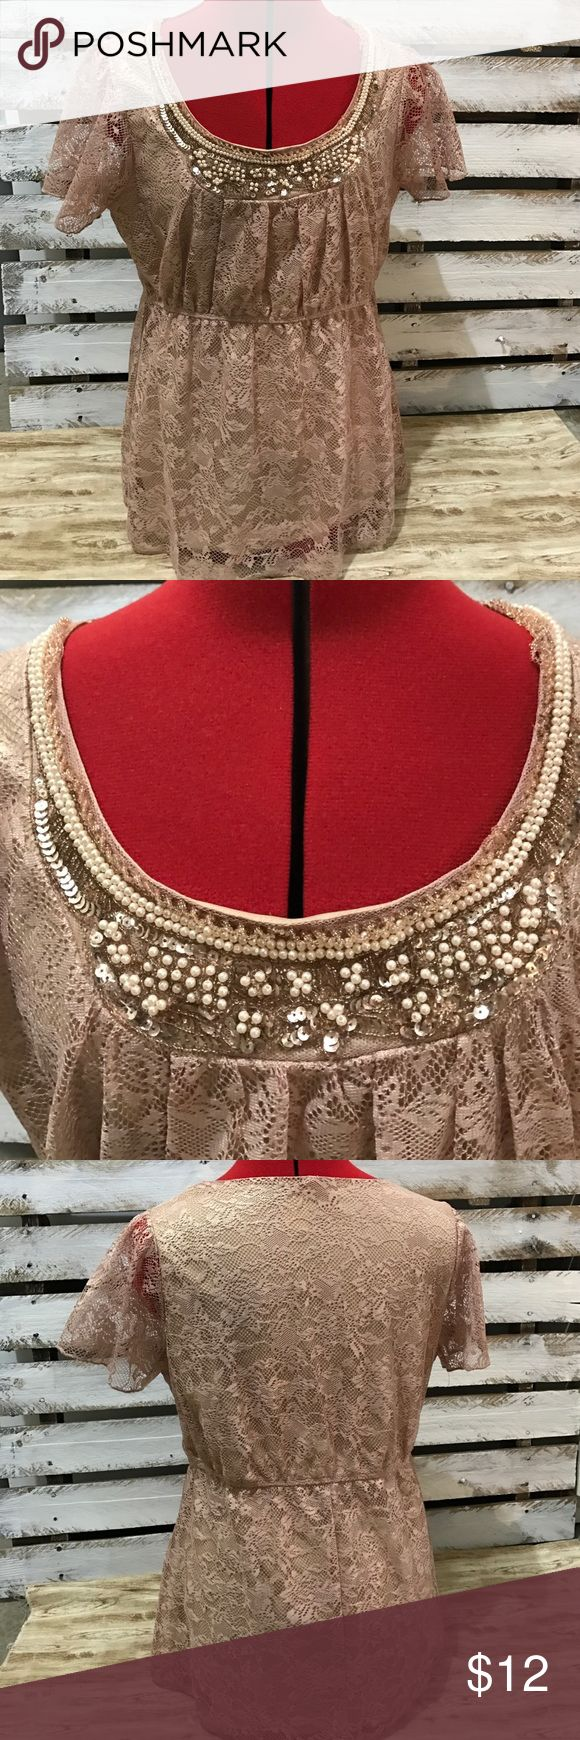 Studio Y Rose Gold Tee LARGE Astoundingly beaiftul rose gold lace tee with bead work. Excellent condition.  Cinched waist. Studio Y Tops Tees - Short Sleeve